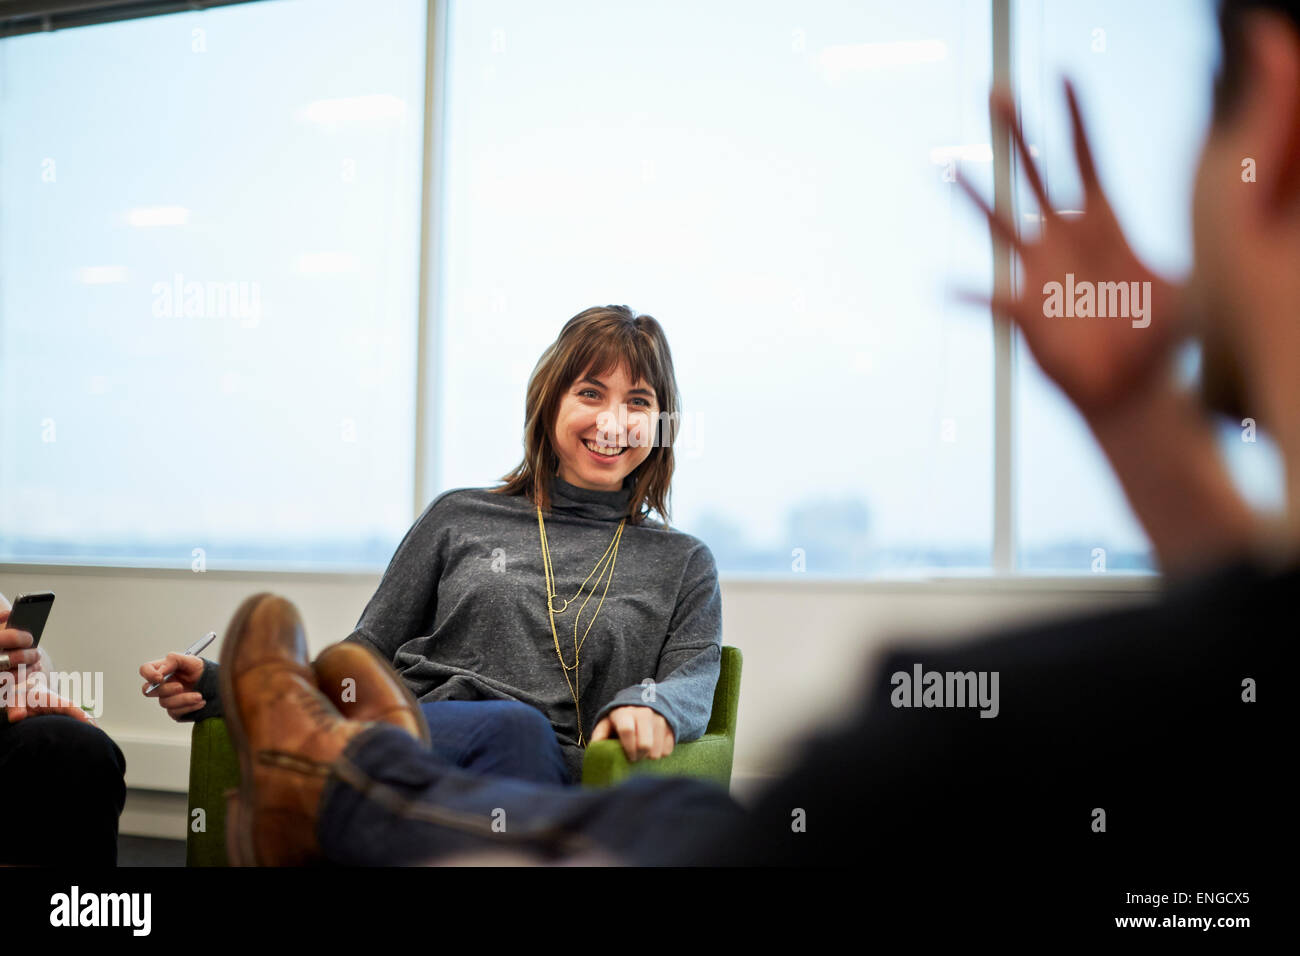 A woman seated in an office talking to someone with their feet up on the table. - Stock Image